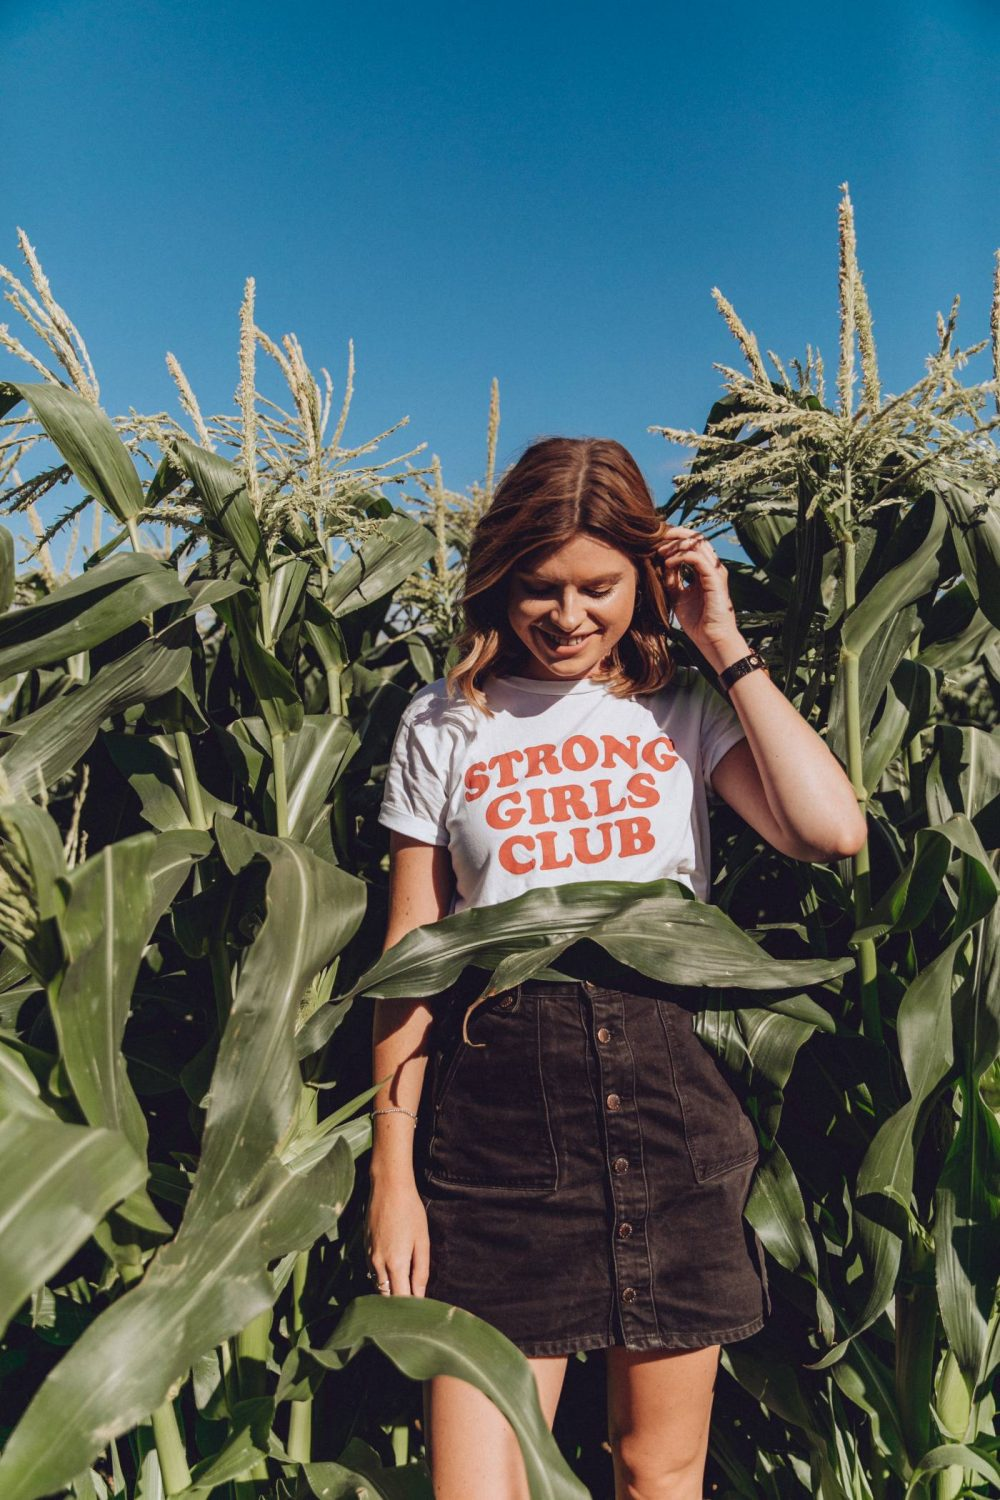 Sophie wearing a white t-shirt with 'Strong Girls Club' in red lettering on the front, standing in a field of corn at The Patch MK.